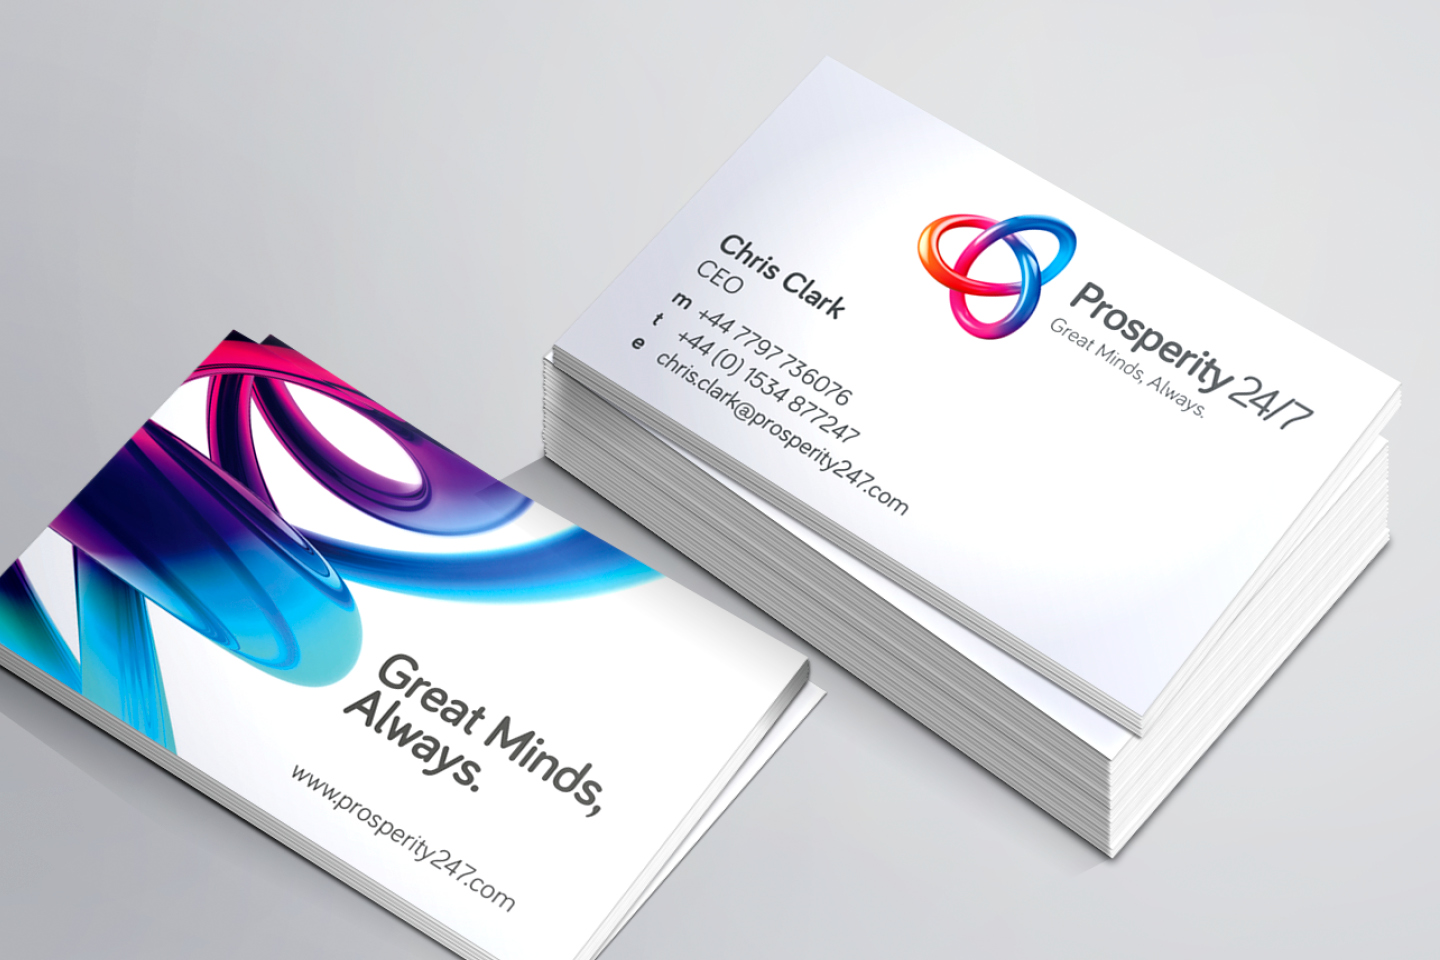 Prosperity 24/7 branded business cards